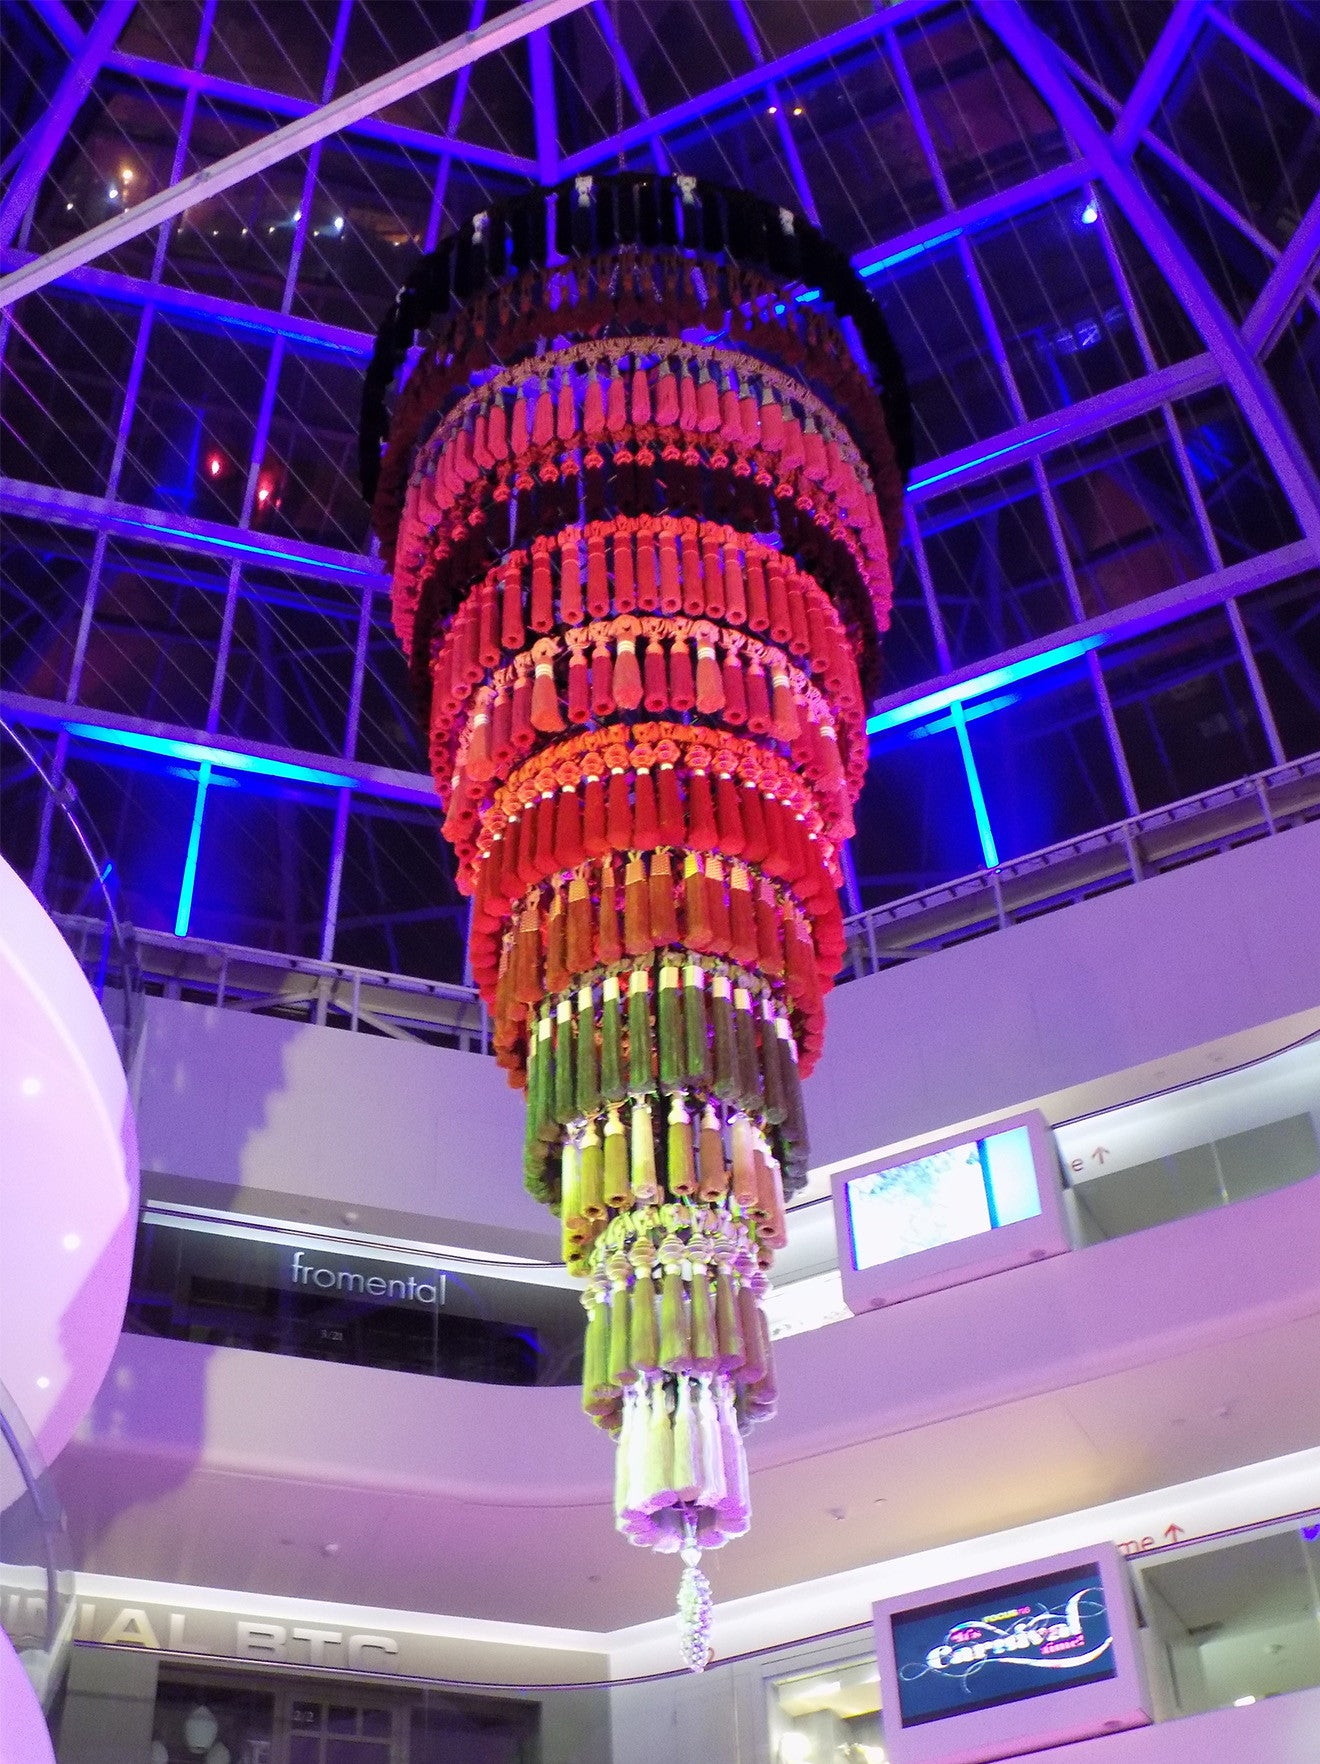 Large chandelier made up of coloured tassels